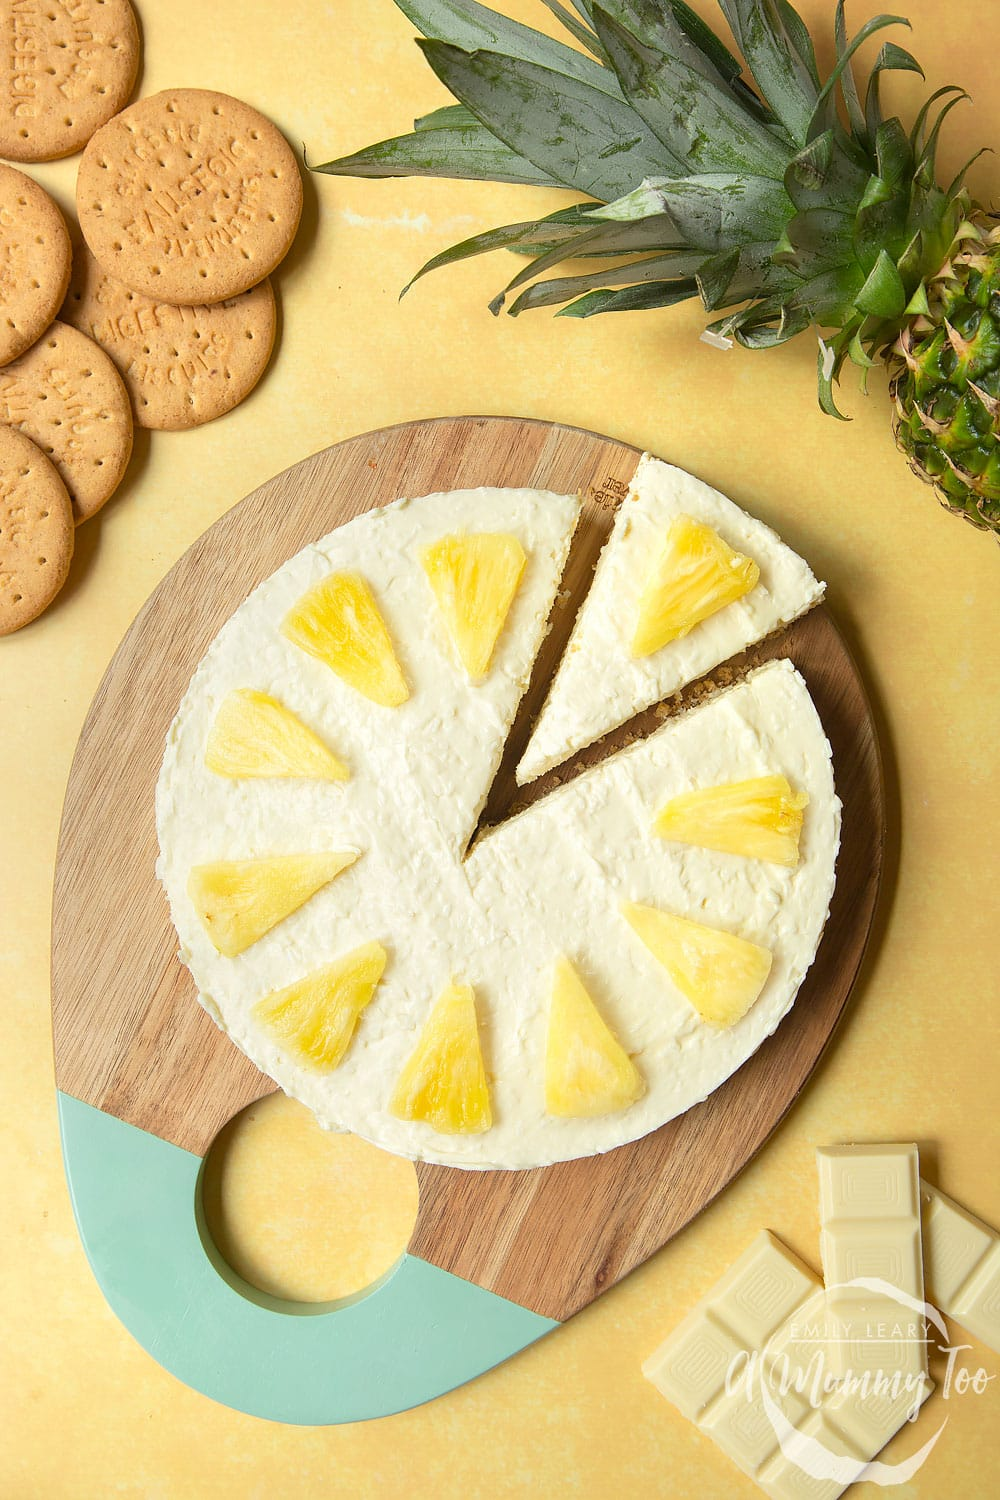 Extra special no-bake coconut cheesecake topped with pineapple pieces.